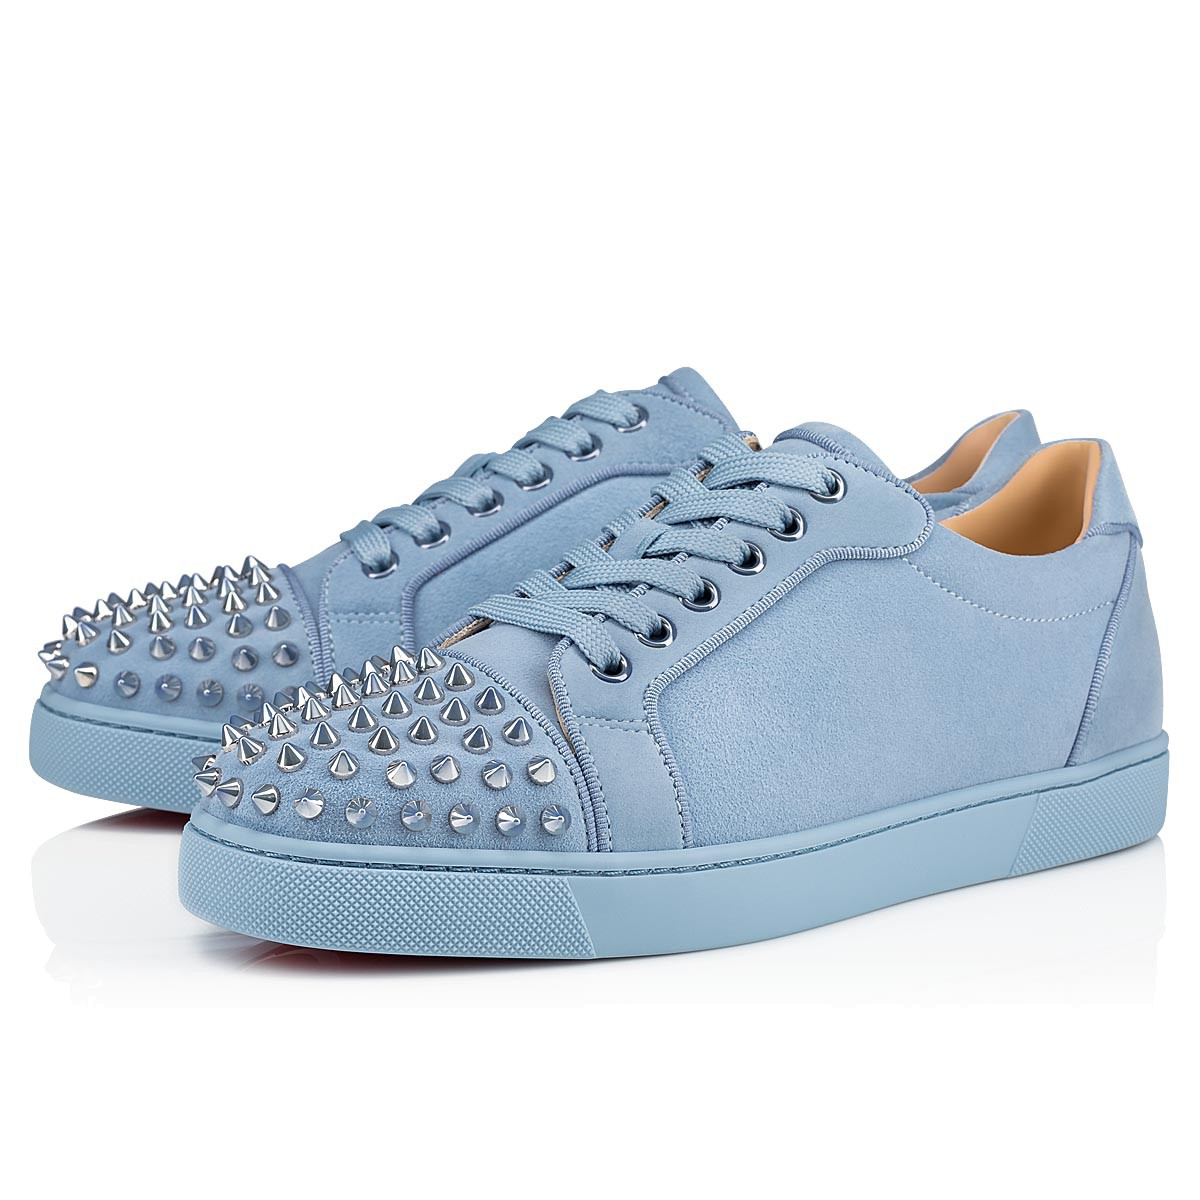 newest collection 90f27 a2c9f Christian Louboutin Vieira Spikes Orlato Dames Sneakers - Blauw in  SneakerStad